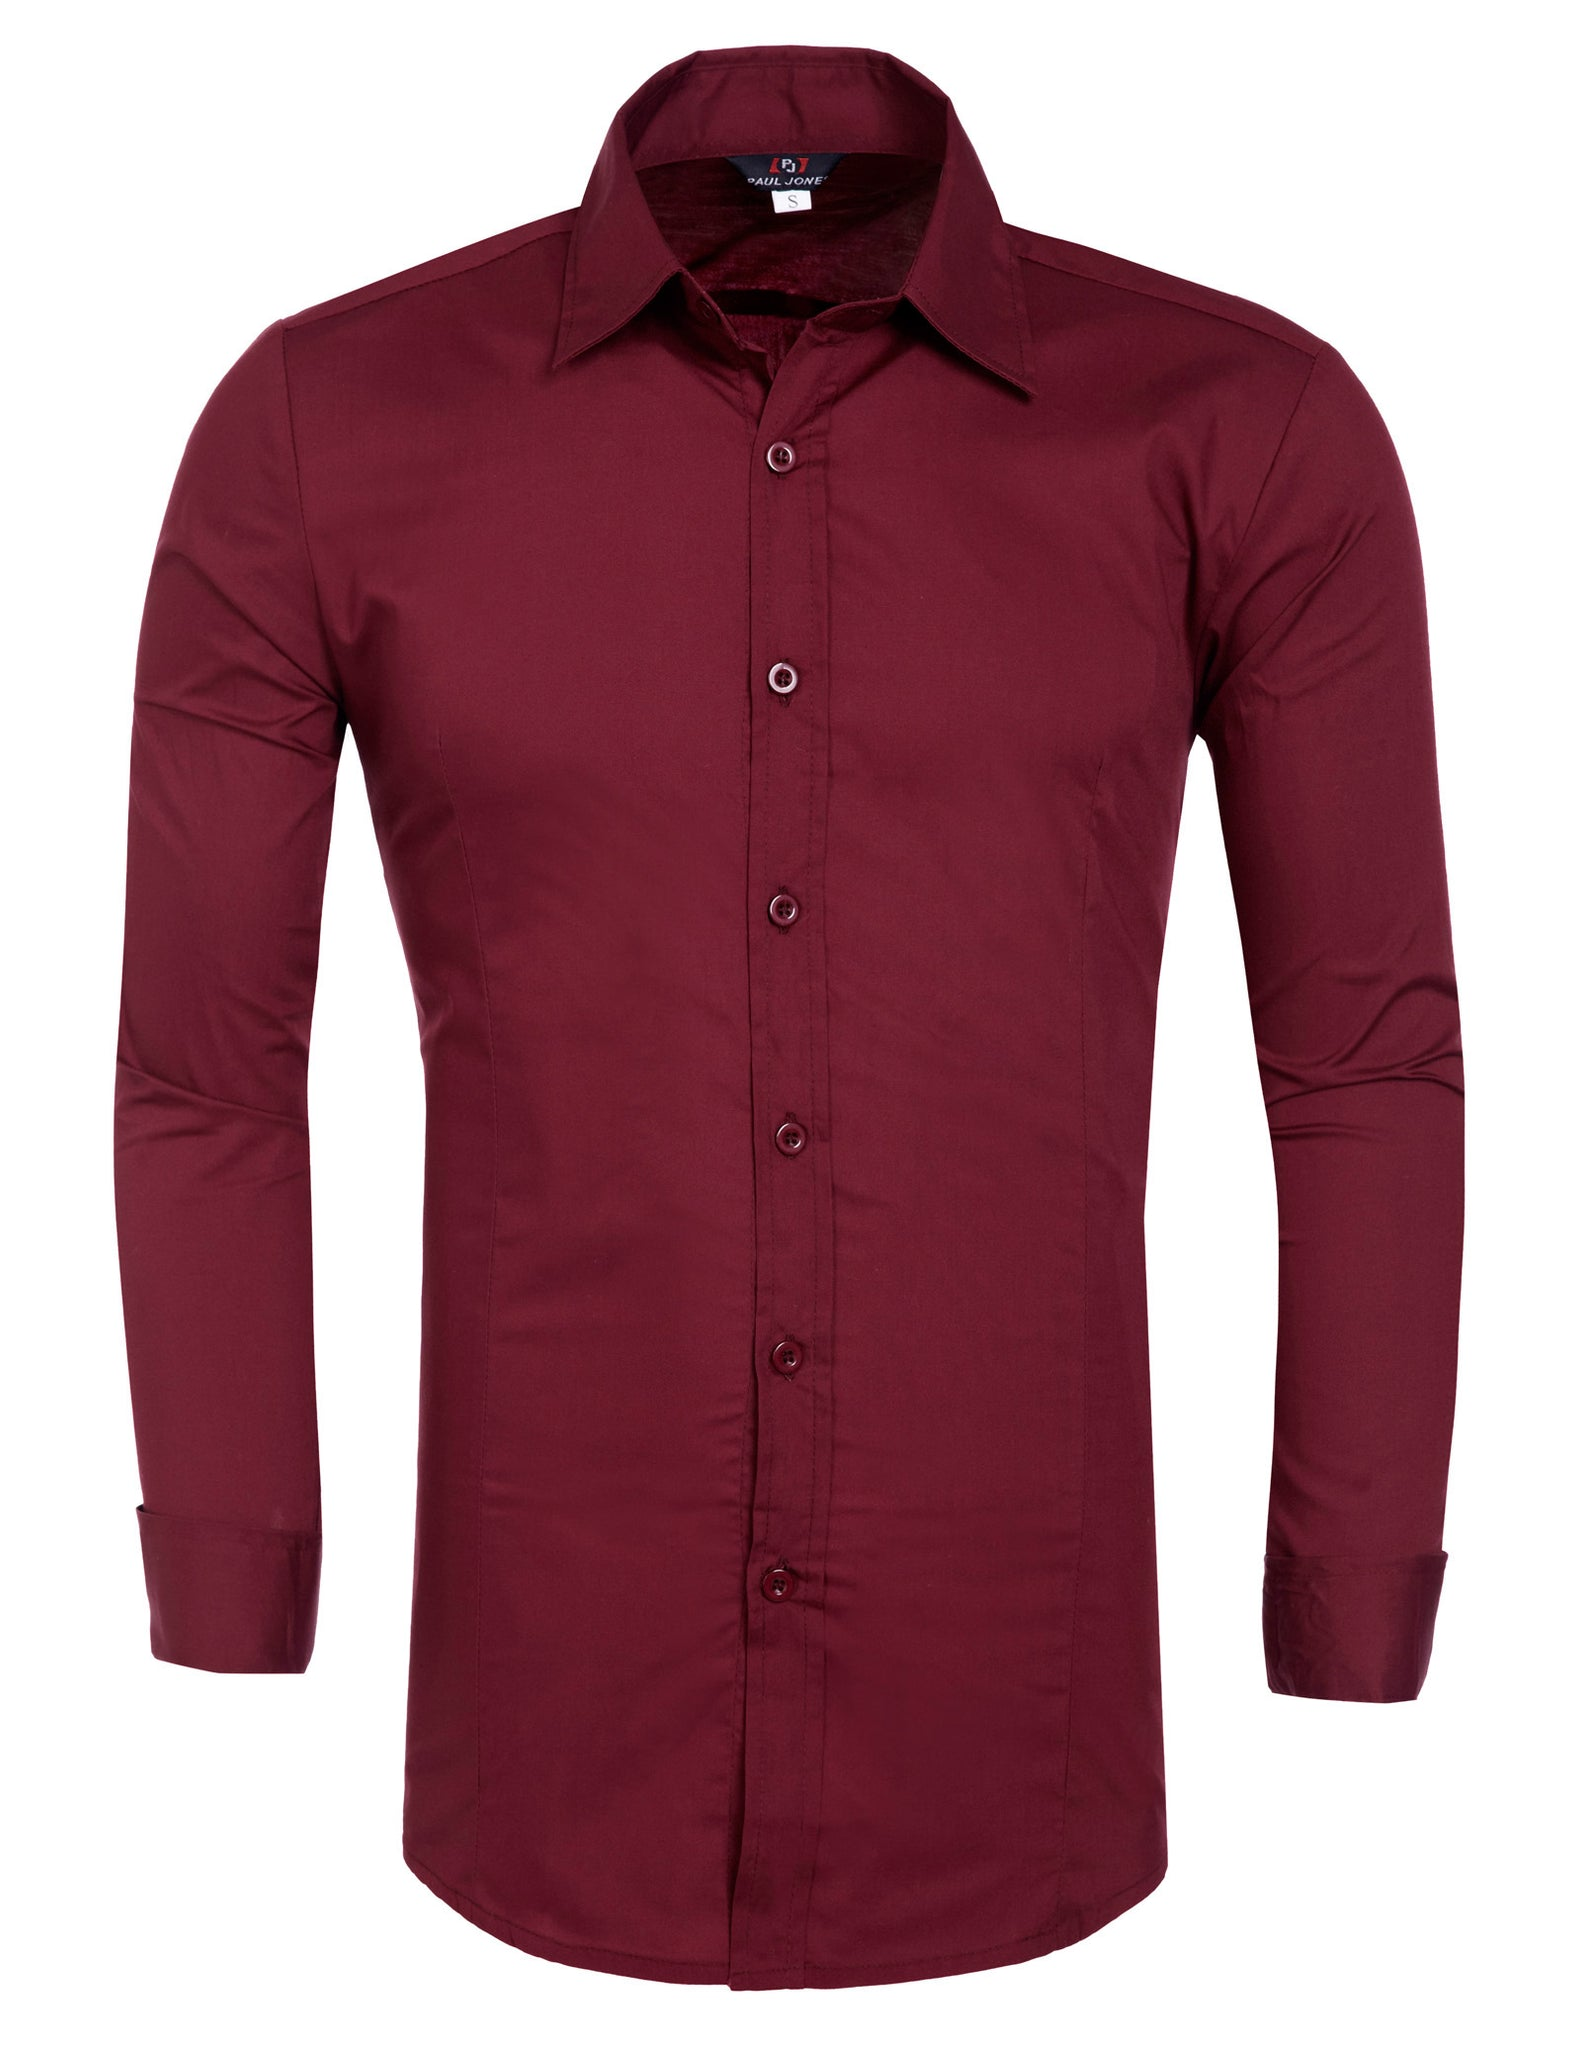 acf282f53ad62e ... 2012 Collection New Mens Luxury Formal Casual Stretch Slim Fit Dress  Shirt Tops